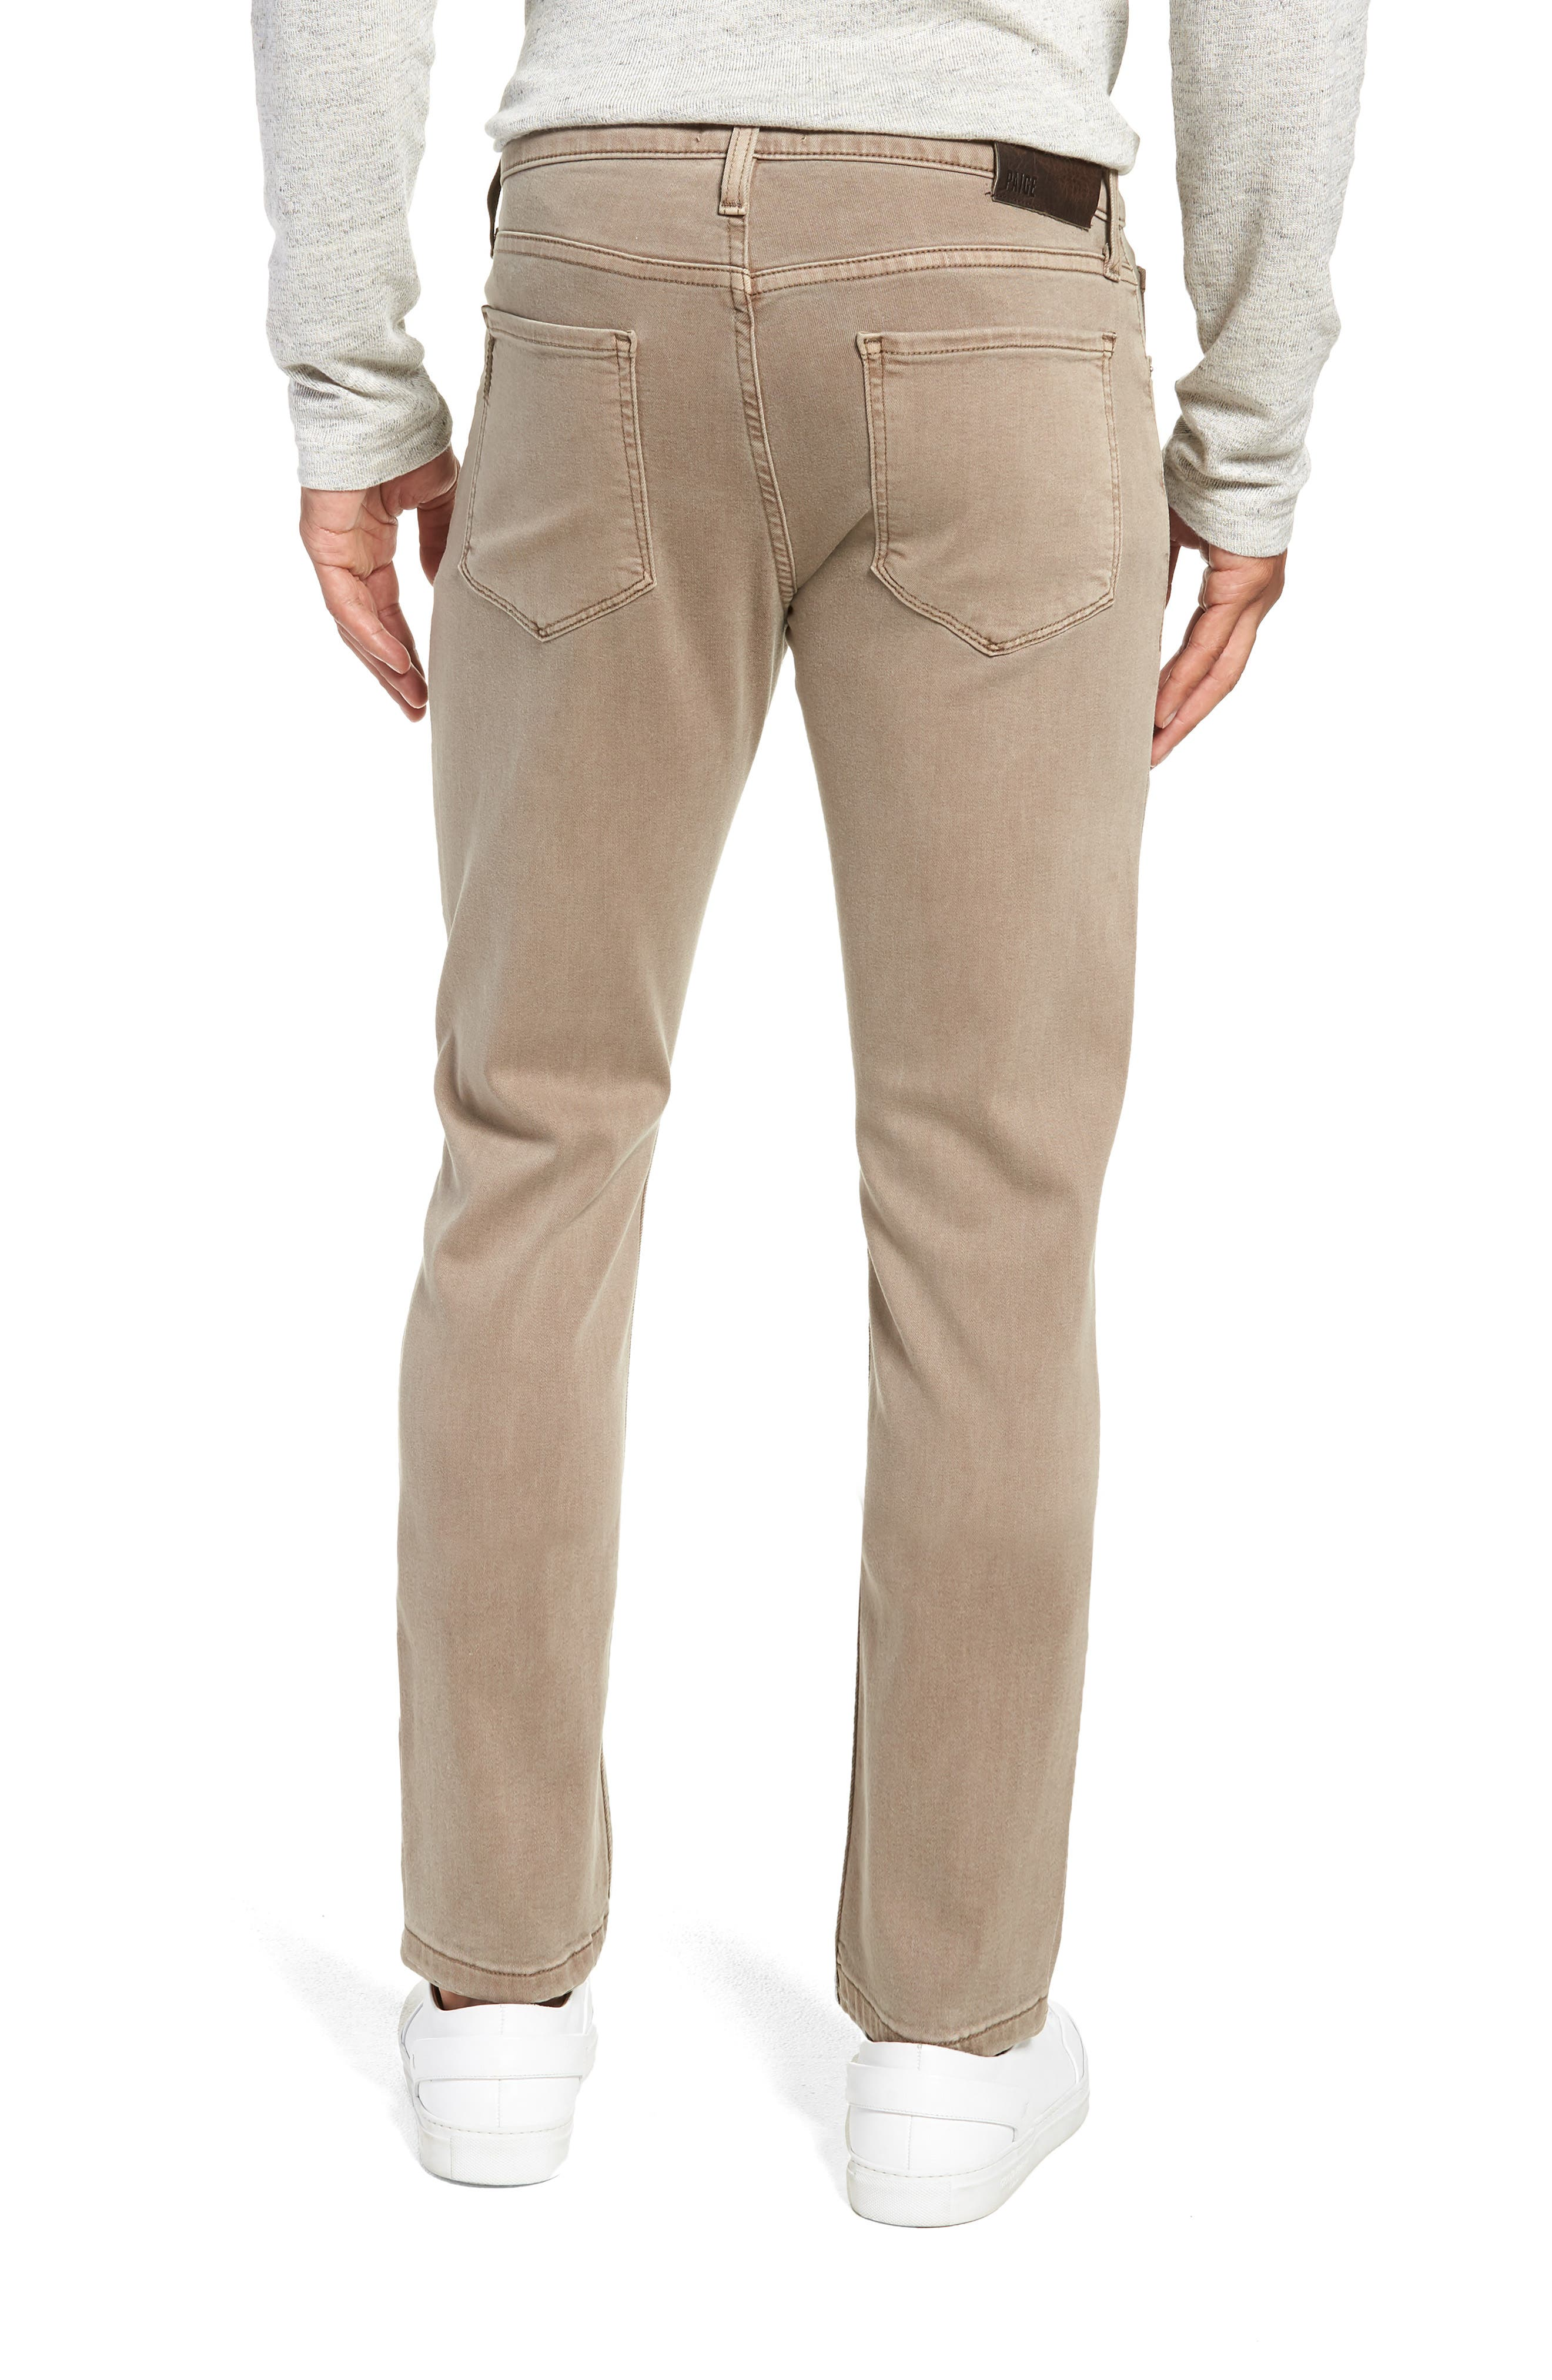 Transcend - Lennox Slim Fit Twill Pants,                             Alternate thumbnail 2, color,                             VINTAGE MUSHROOM